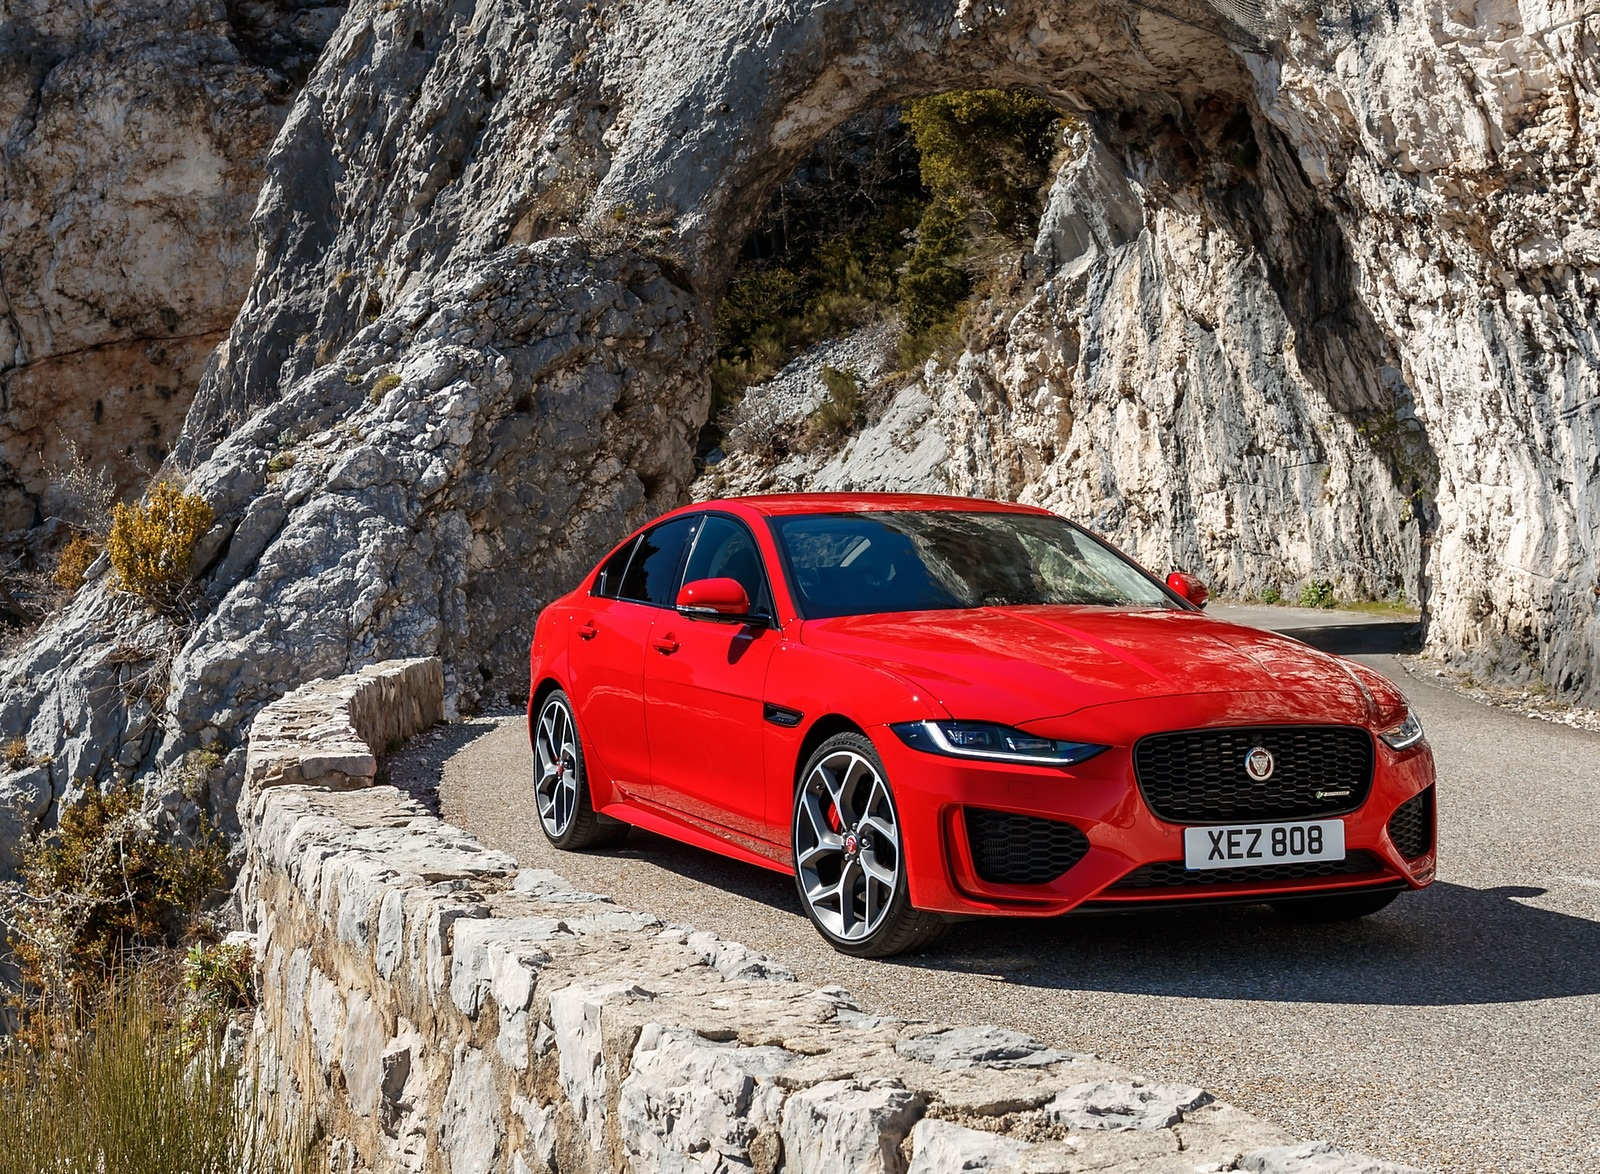 2020 Jaguar XE S R-Dynamic P300 (Color: Caldera Red) Front Three-Quarter Wallpapers (11)